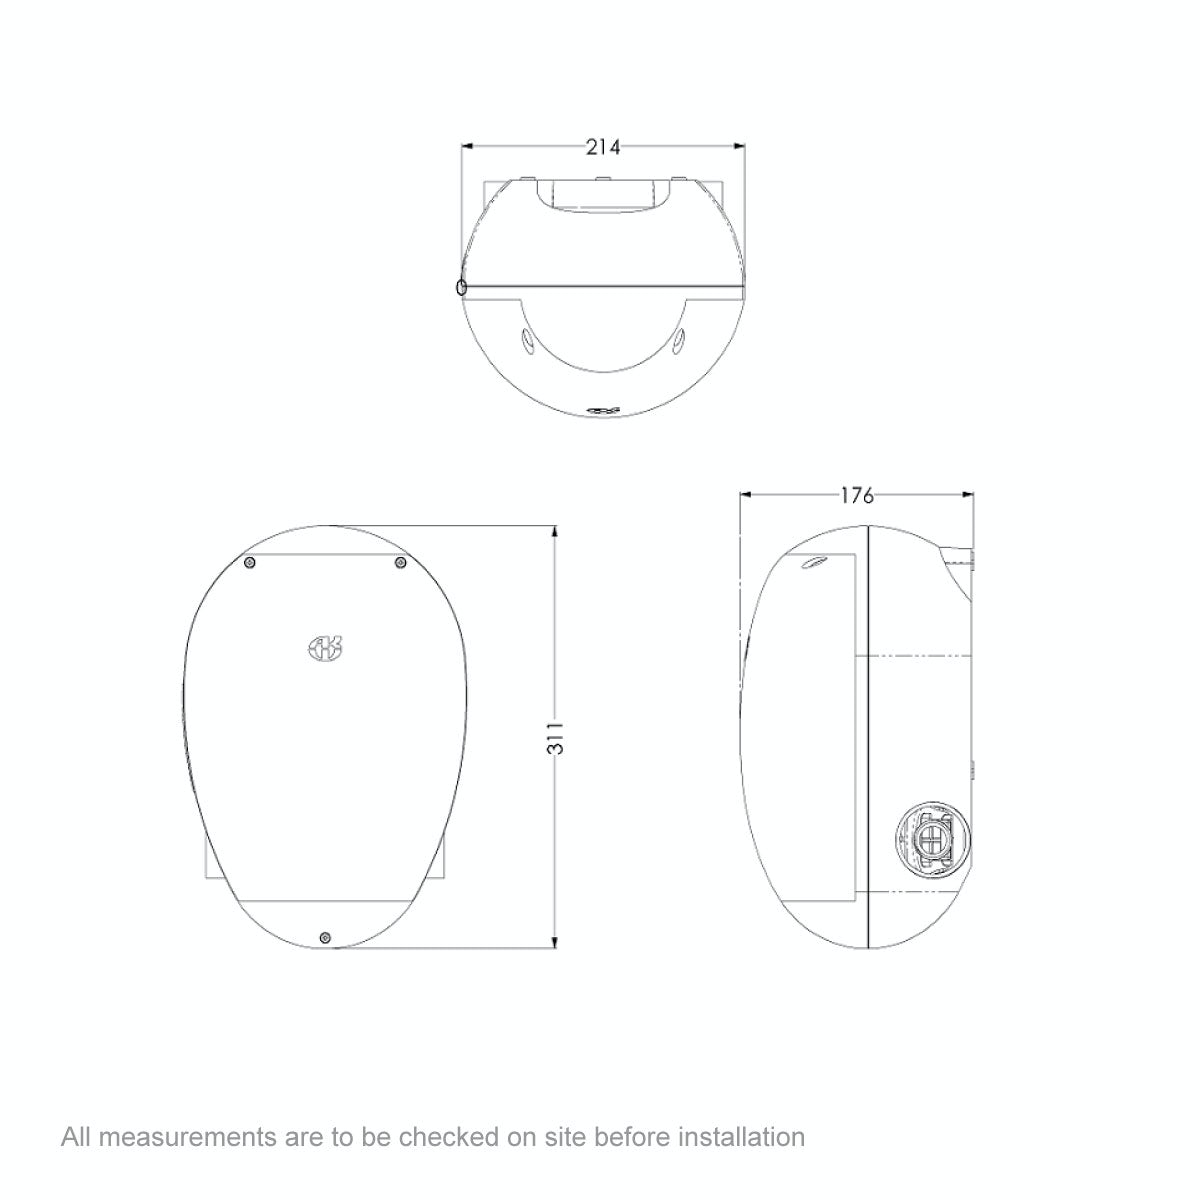 Dimensions for AKW M11 Digipump with waste